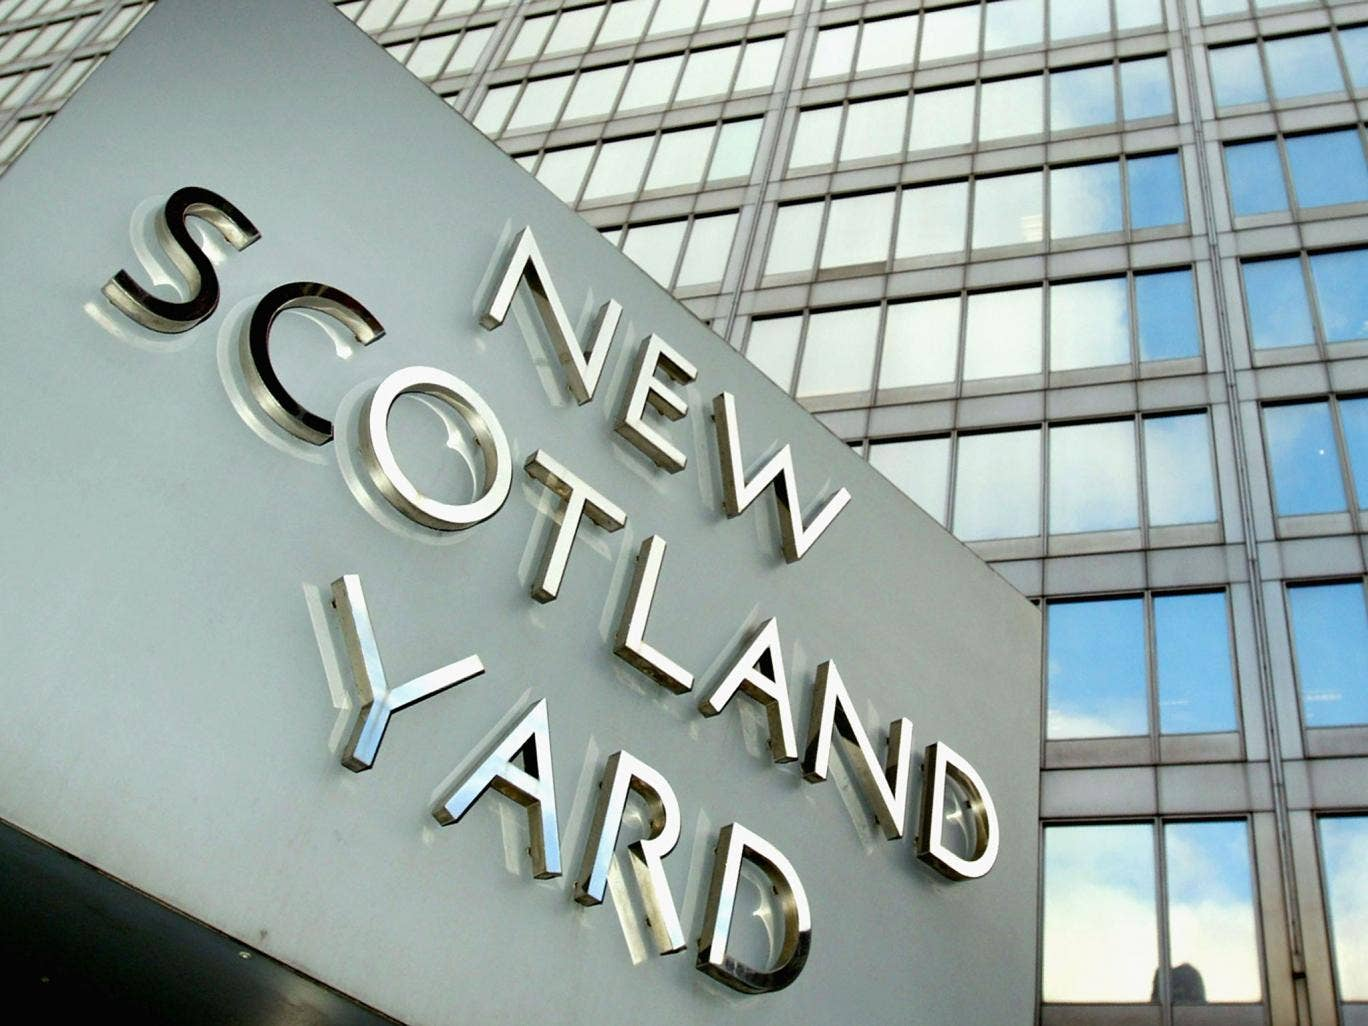 The entire criminal justice system was infiltrated by organised crime gangs, according to a secret Scotland Yard